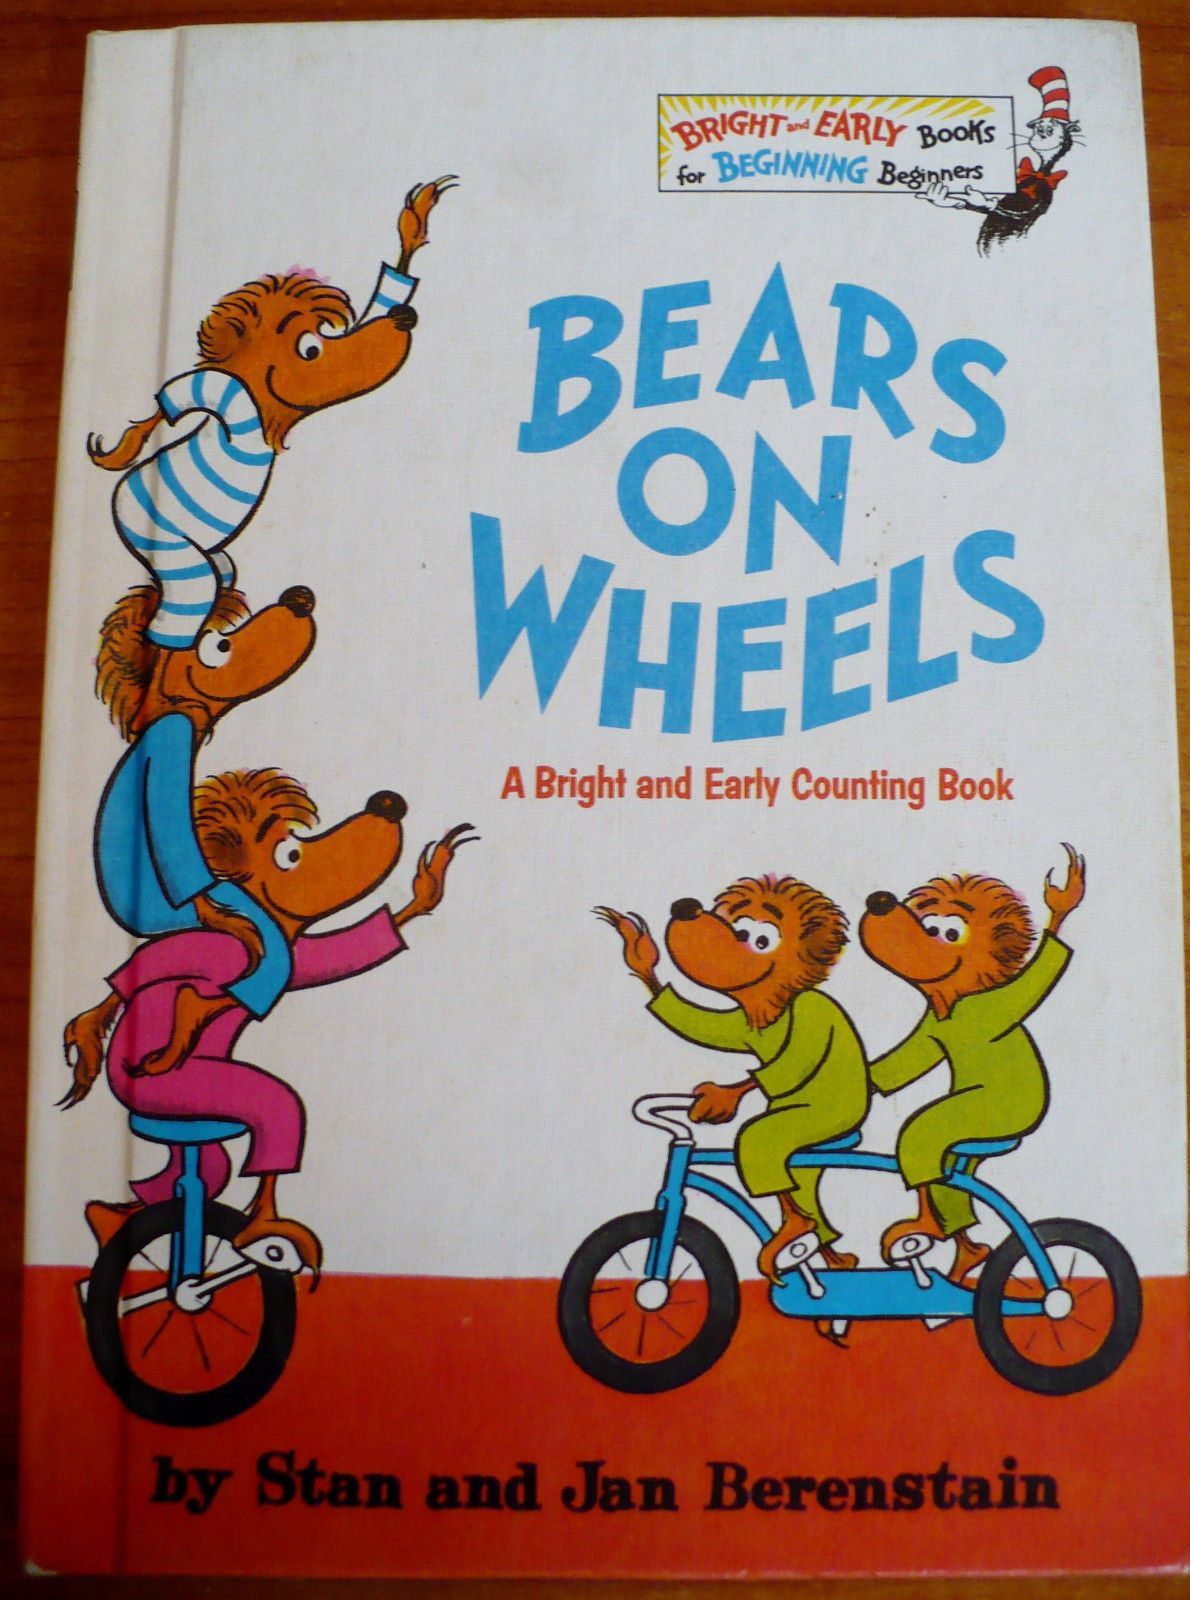 The Berenstain Bears - Bears On Wheels by Stan and Jan Berenstain ...